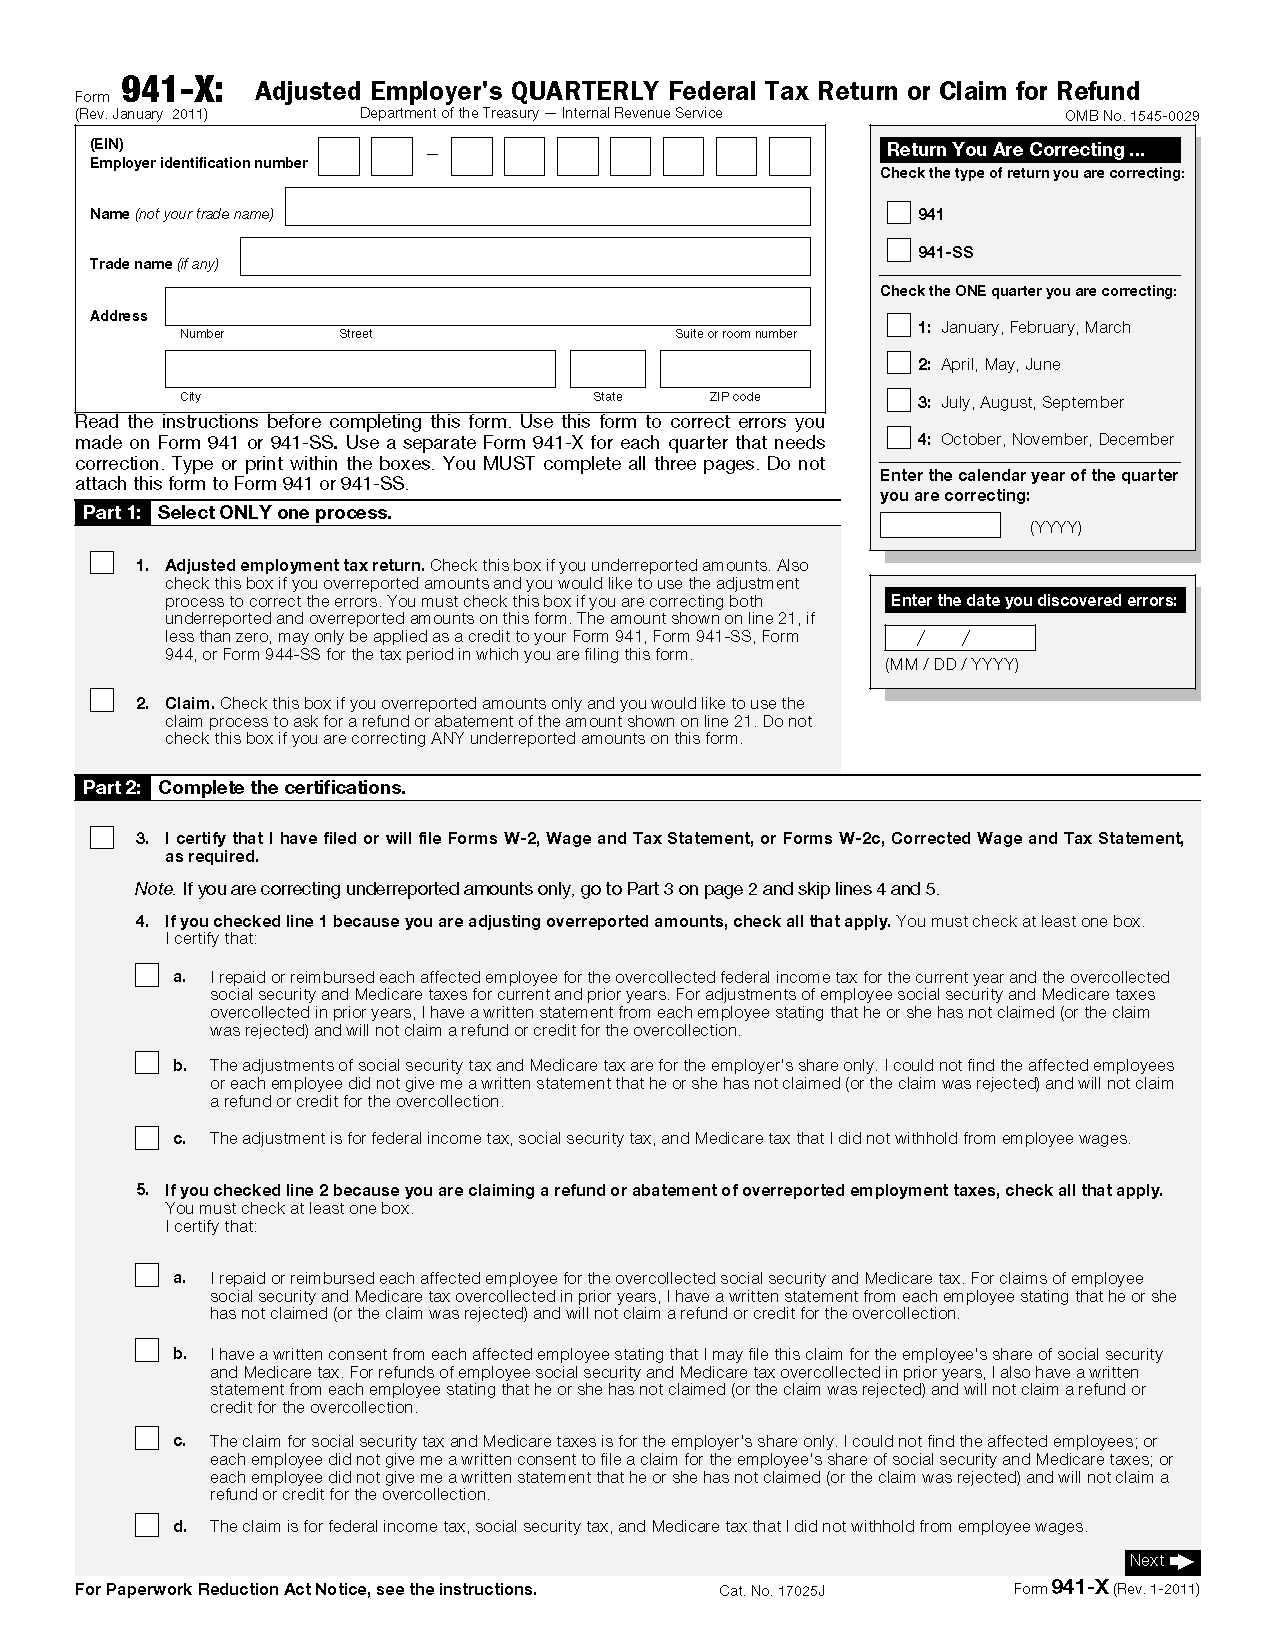 Irs form 941 instructions image collections standard form examples form 941 x adjusted employers quarterly federal tax return or main navigation falaconquin falaconquin